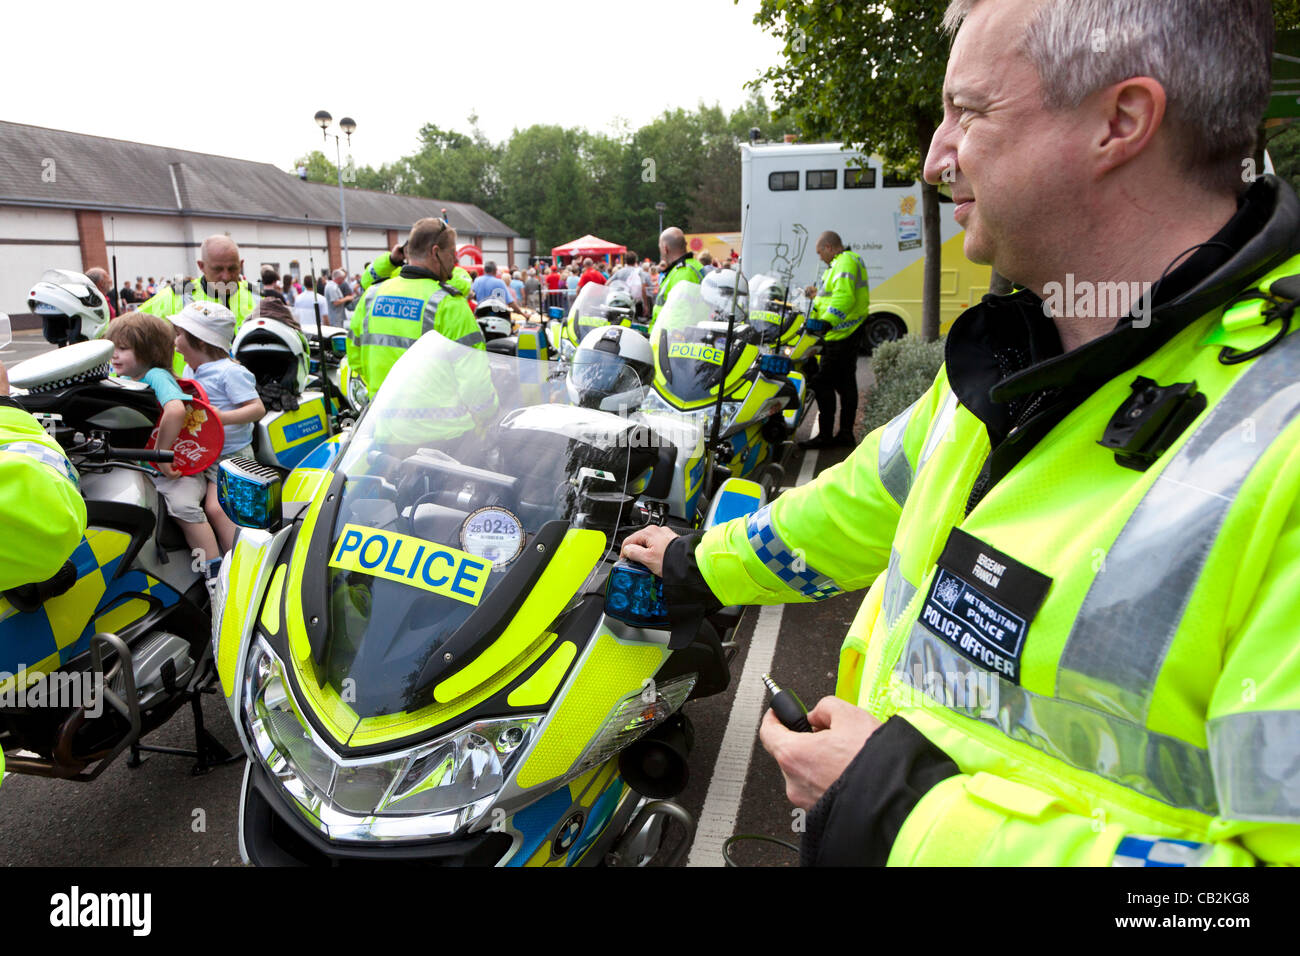 Sgt Franklin of the Metropolitan Police force during a break in security cover at an event in Abergavenny, Wales, - Stock Image